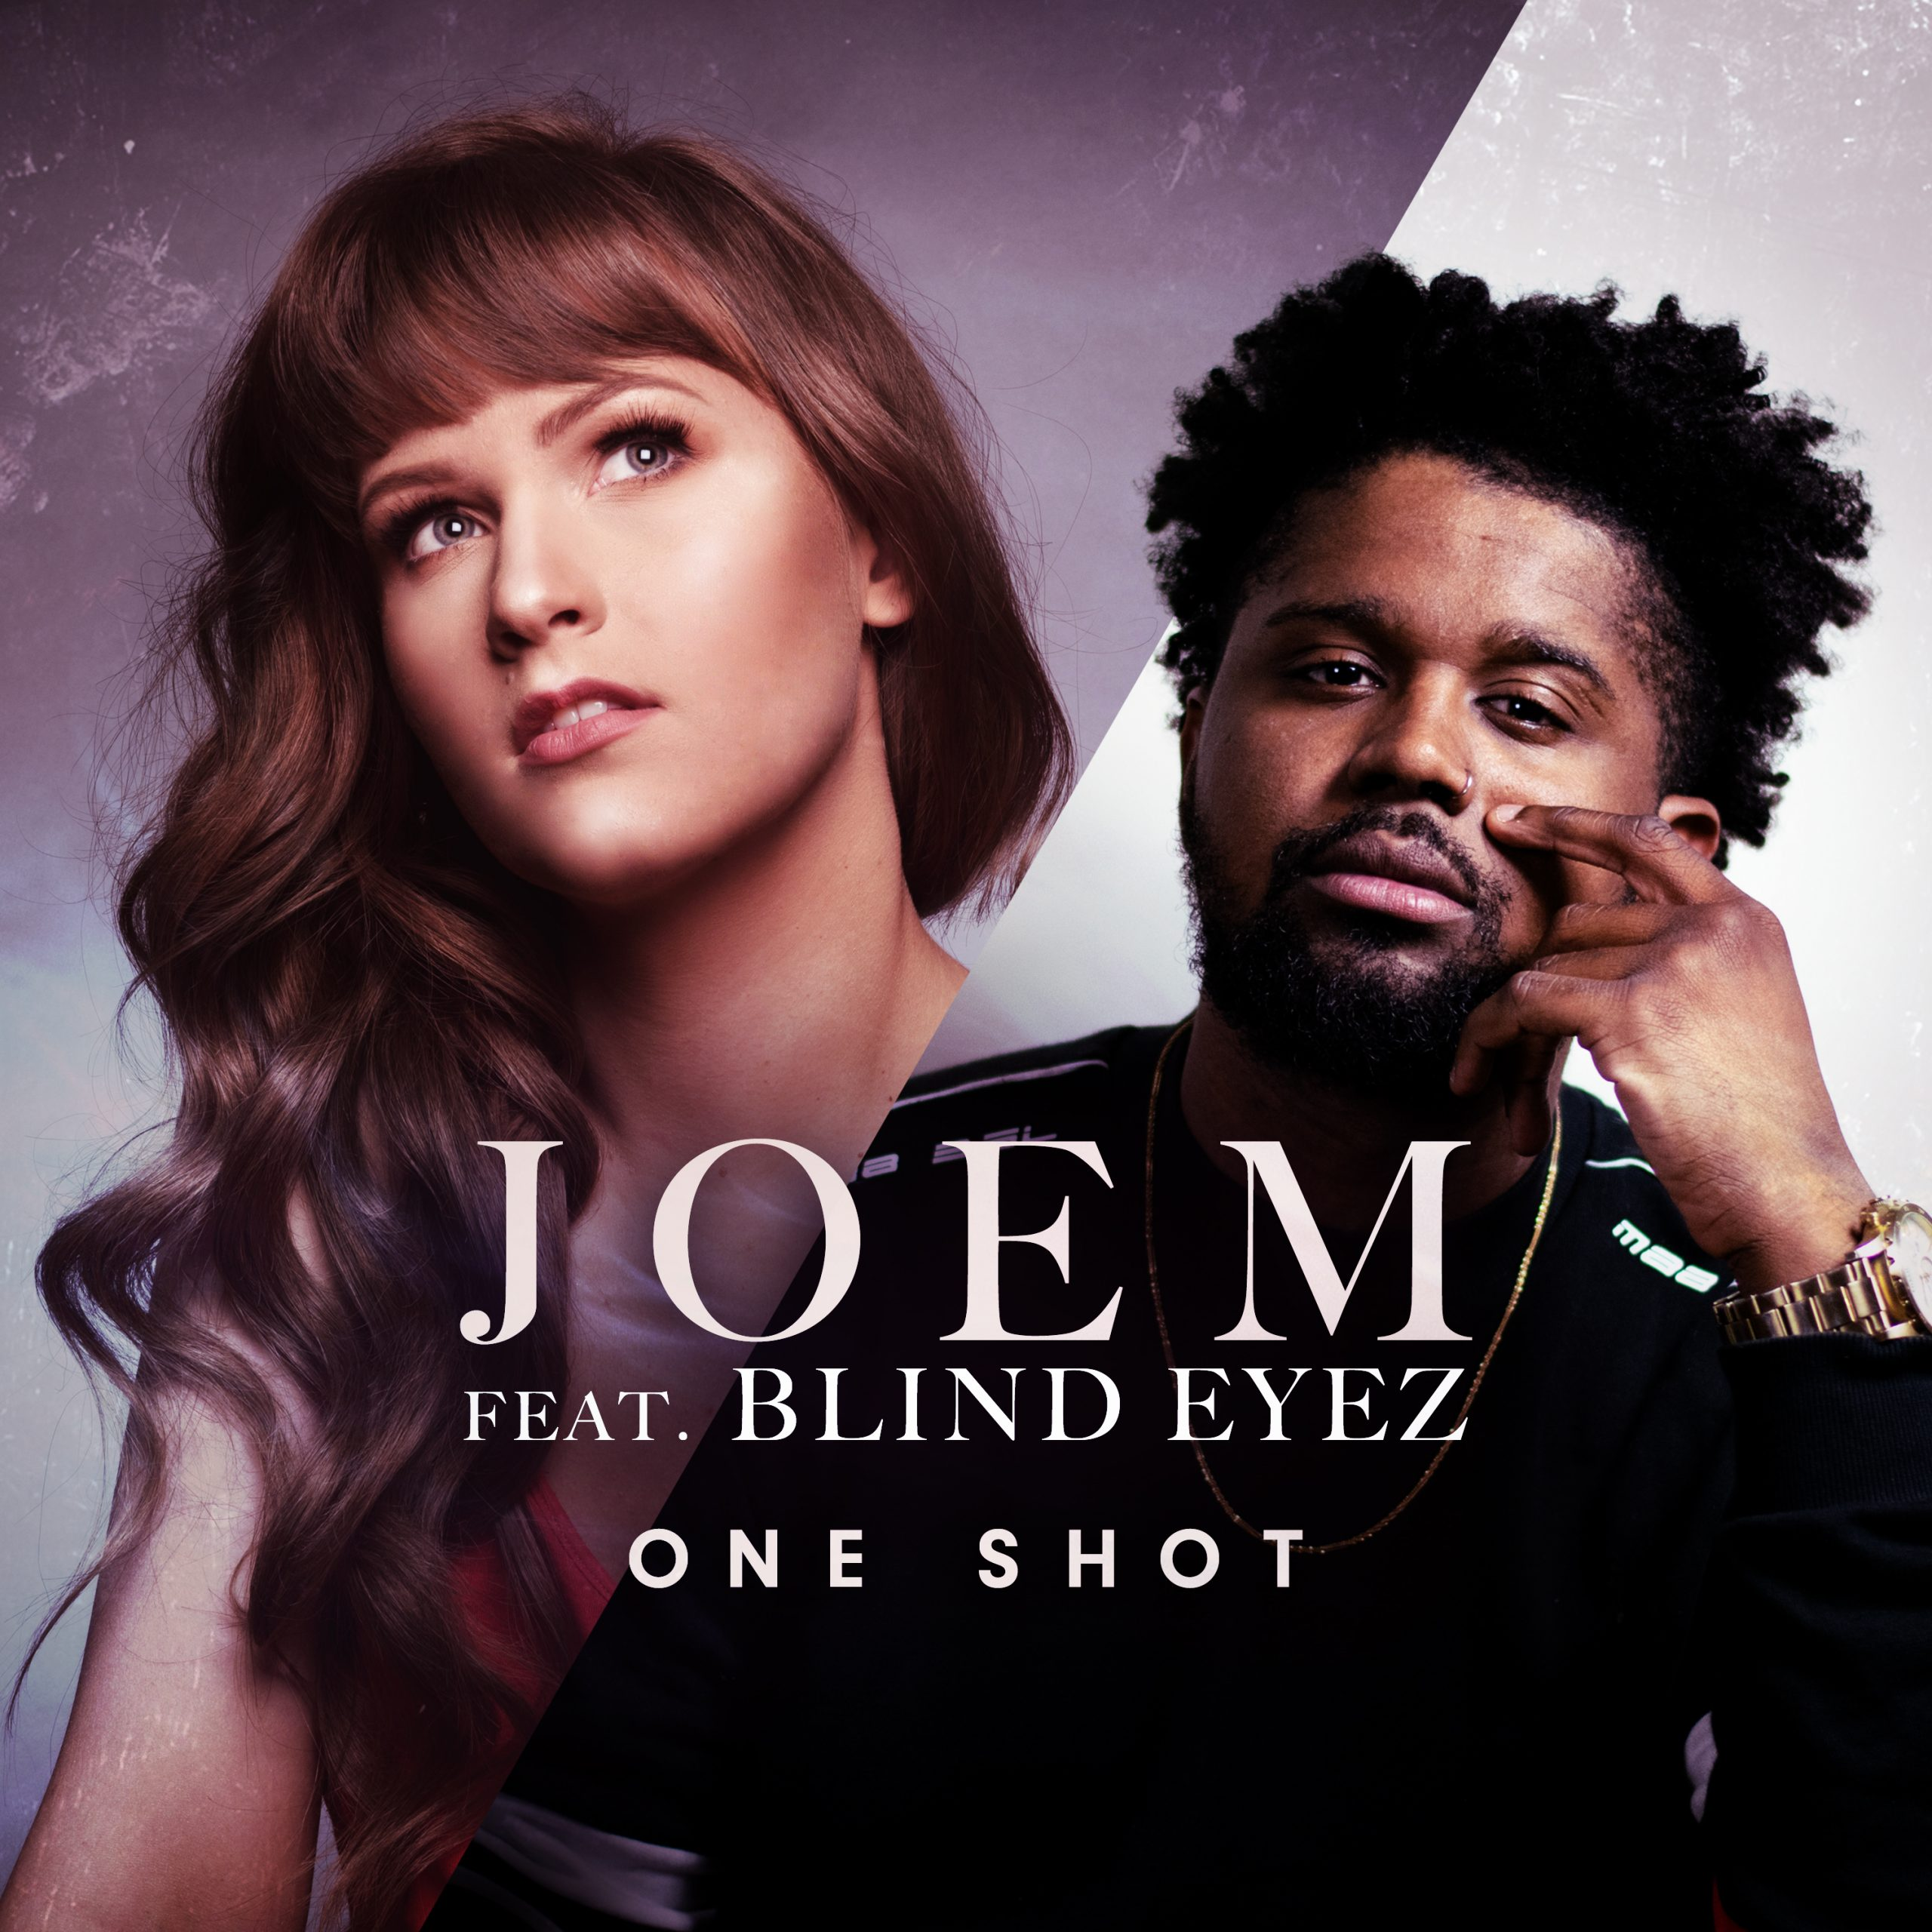 """Read more about the article What Makes JOEM's """"One Shot"""" feat. Blind Eyez a Magnificent Tune?"""